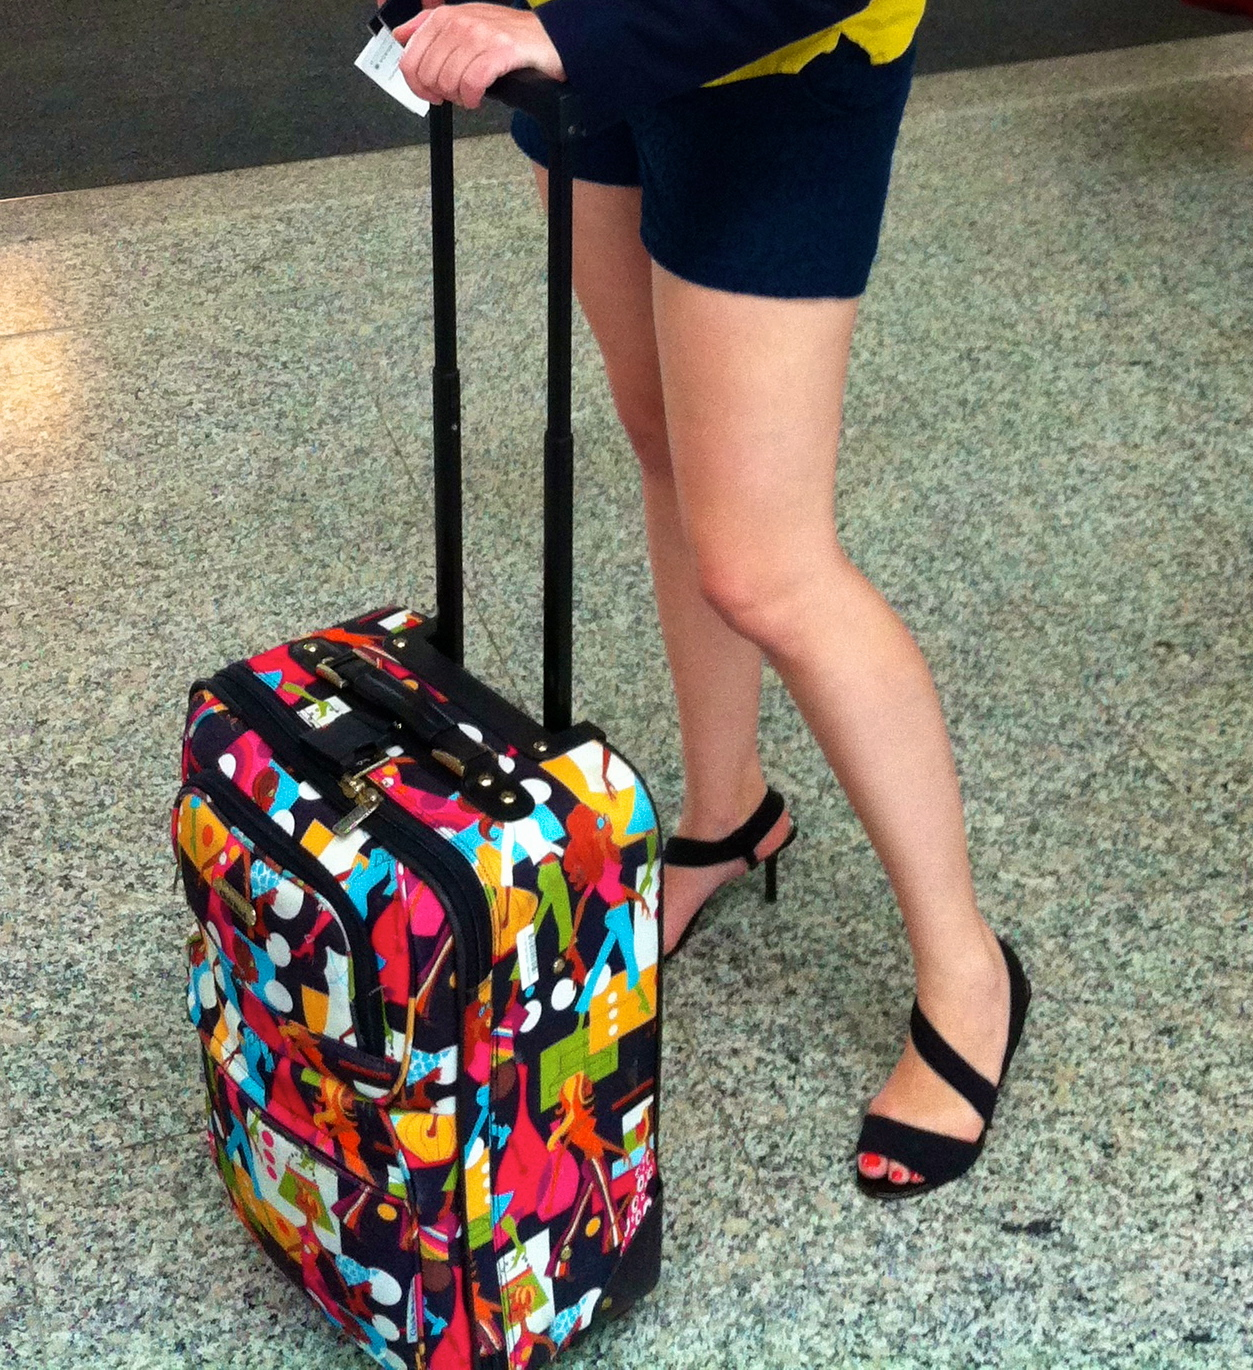 20 Carry On High Heels Suitcase